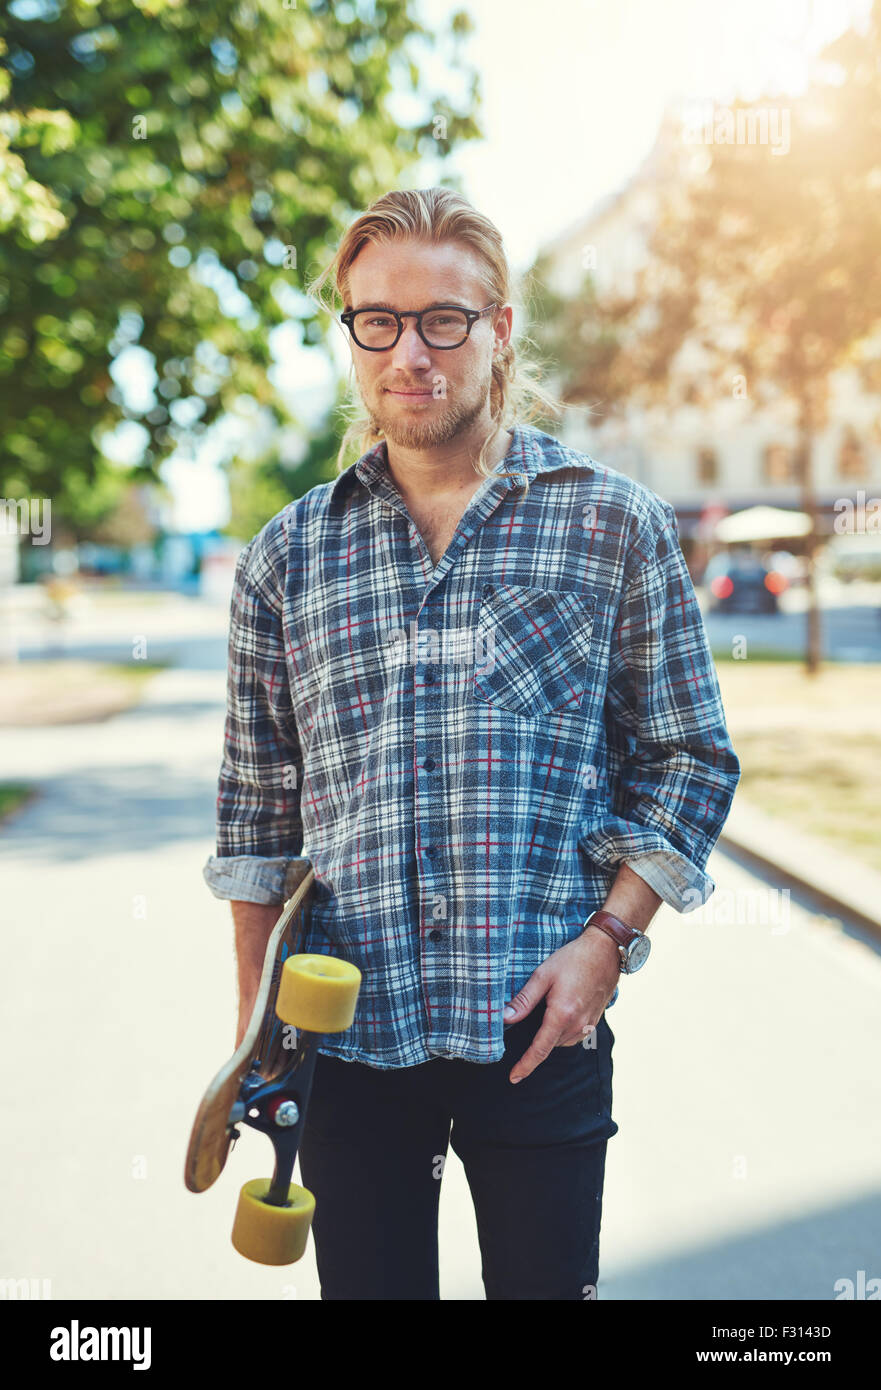 Portrait of cool young man with long hair and glasses carrying a skateboard - Stock Image